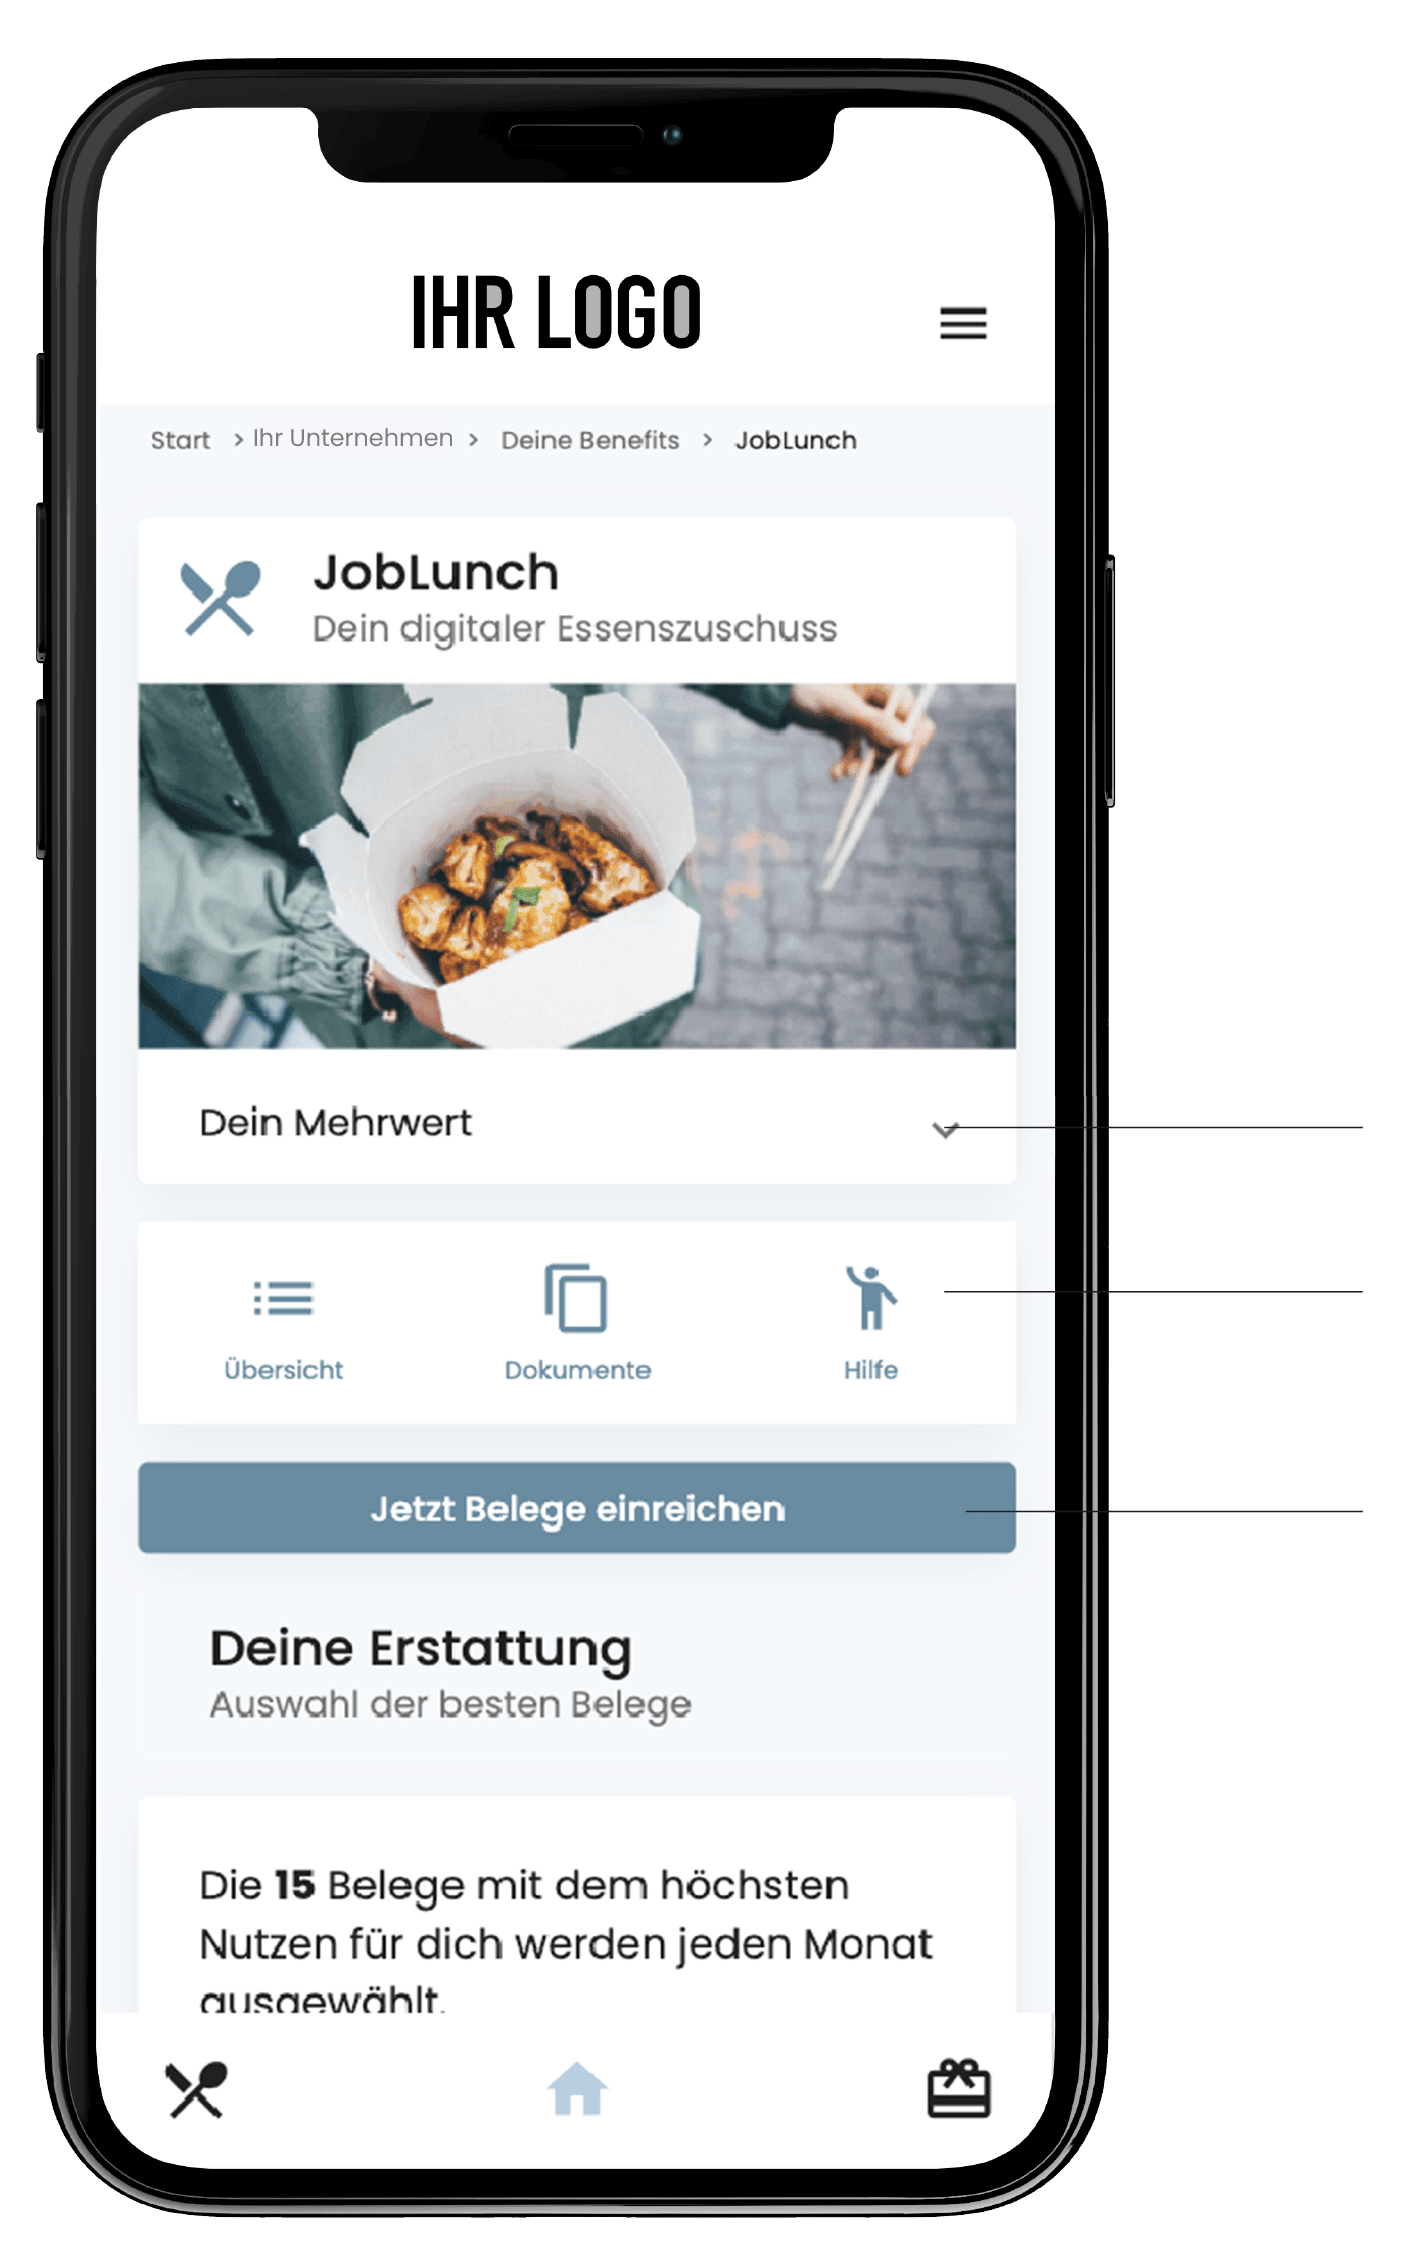 Meal vouchers for employees